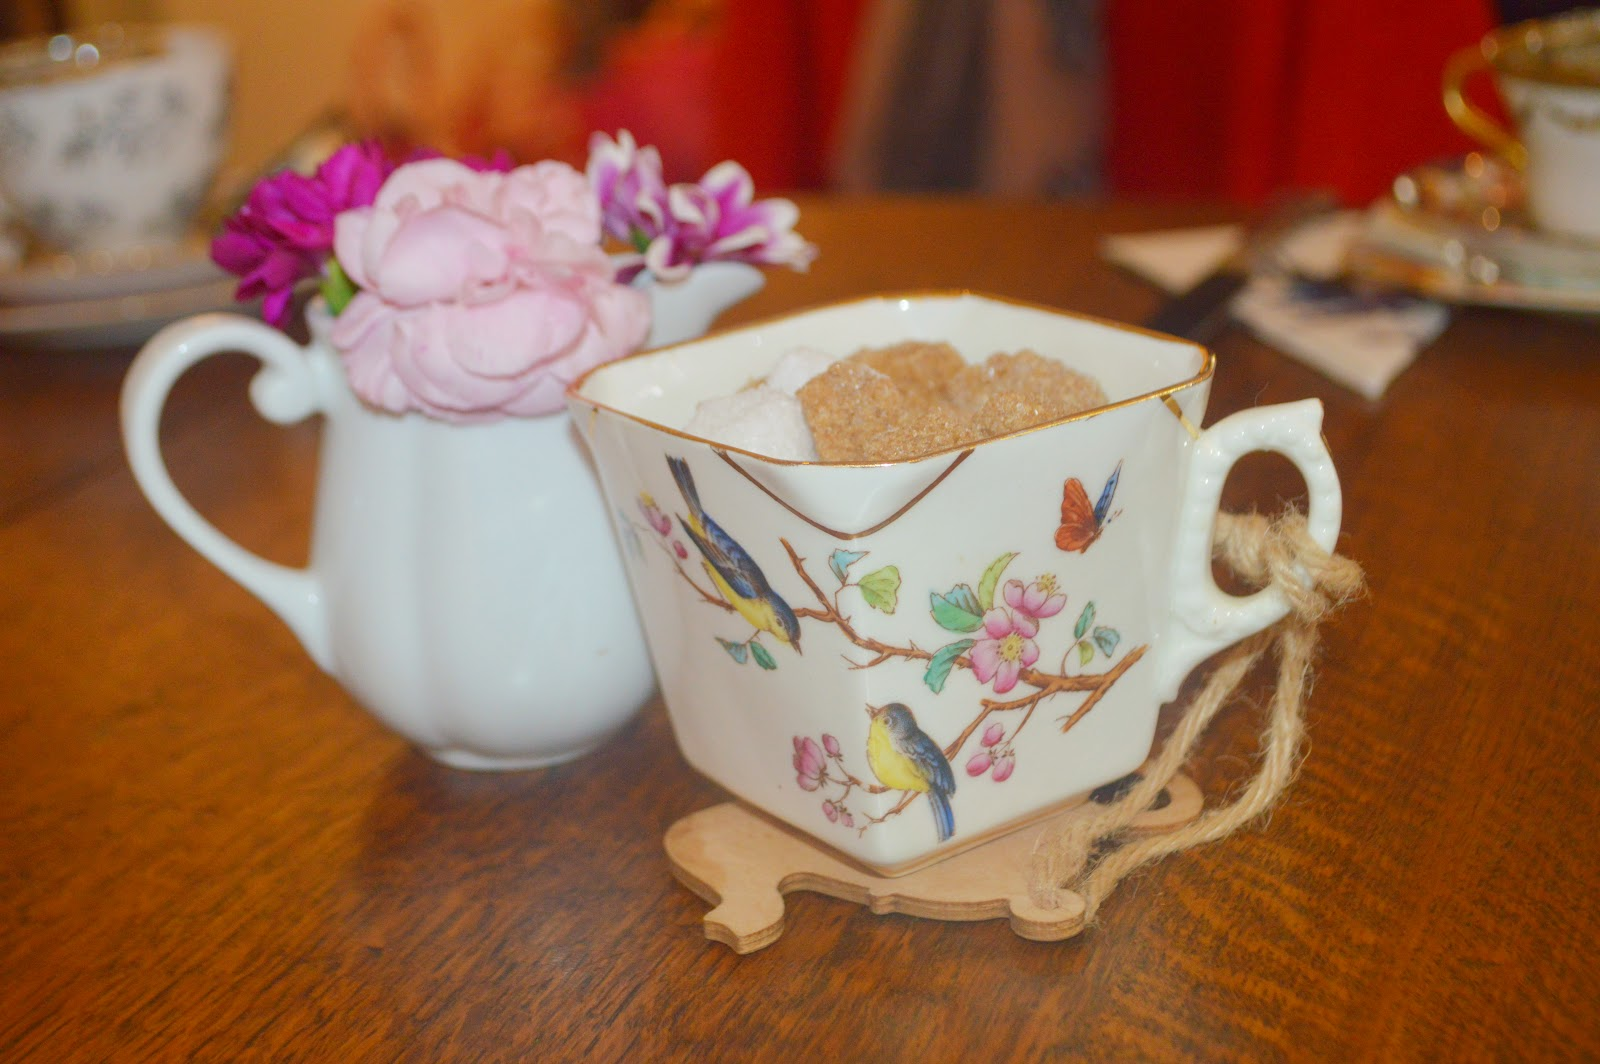 , Cardiff Bloggers Meet at Pettigrew Tea Rooms #cdfbloggerstea